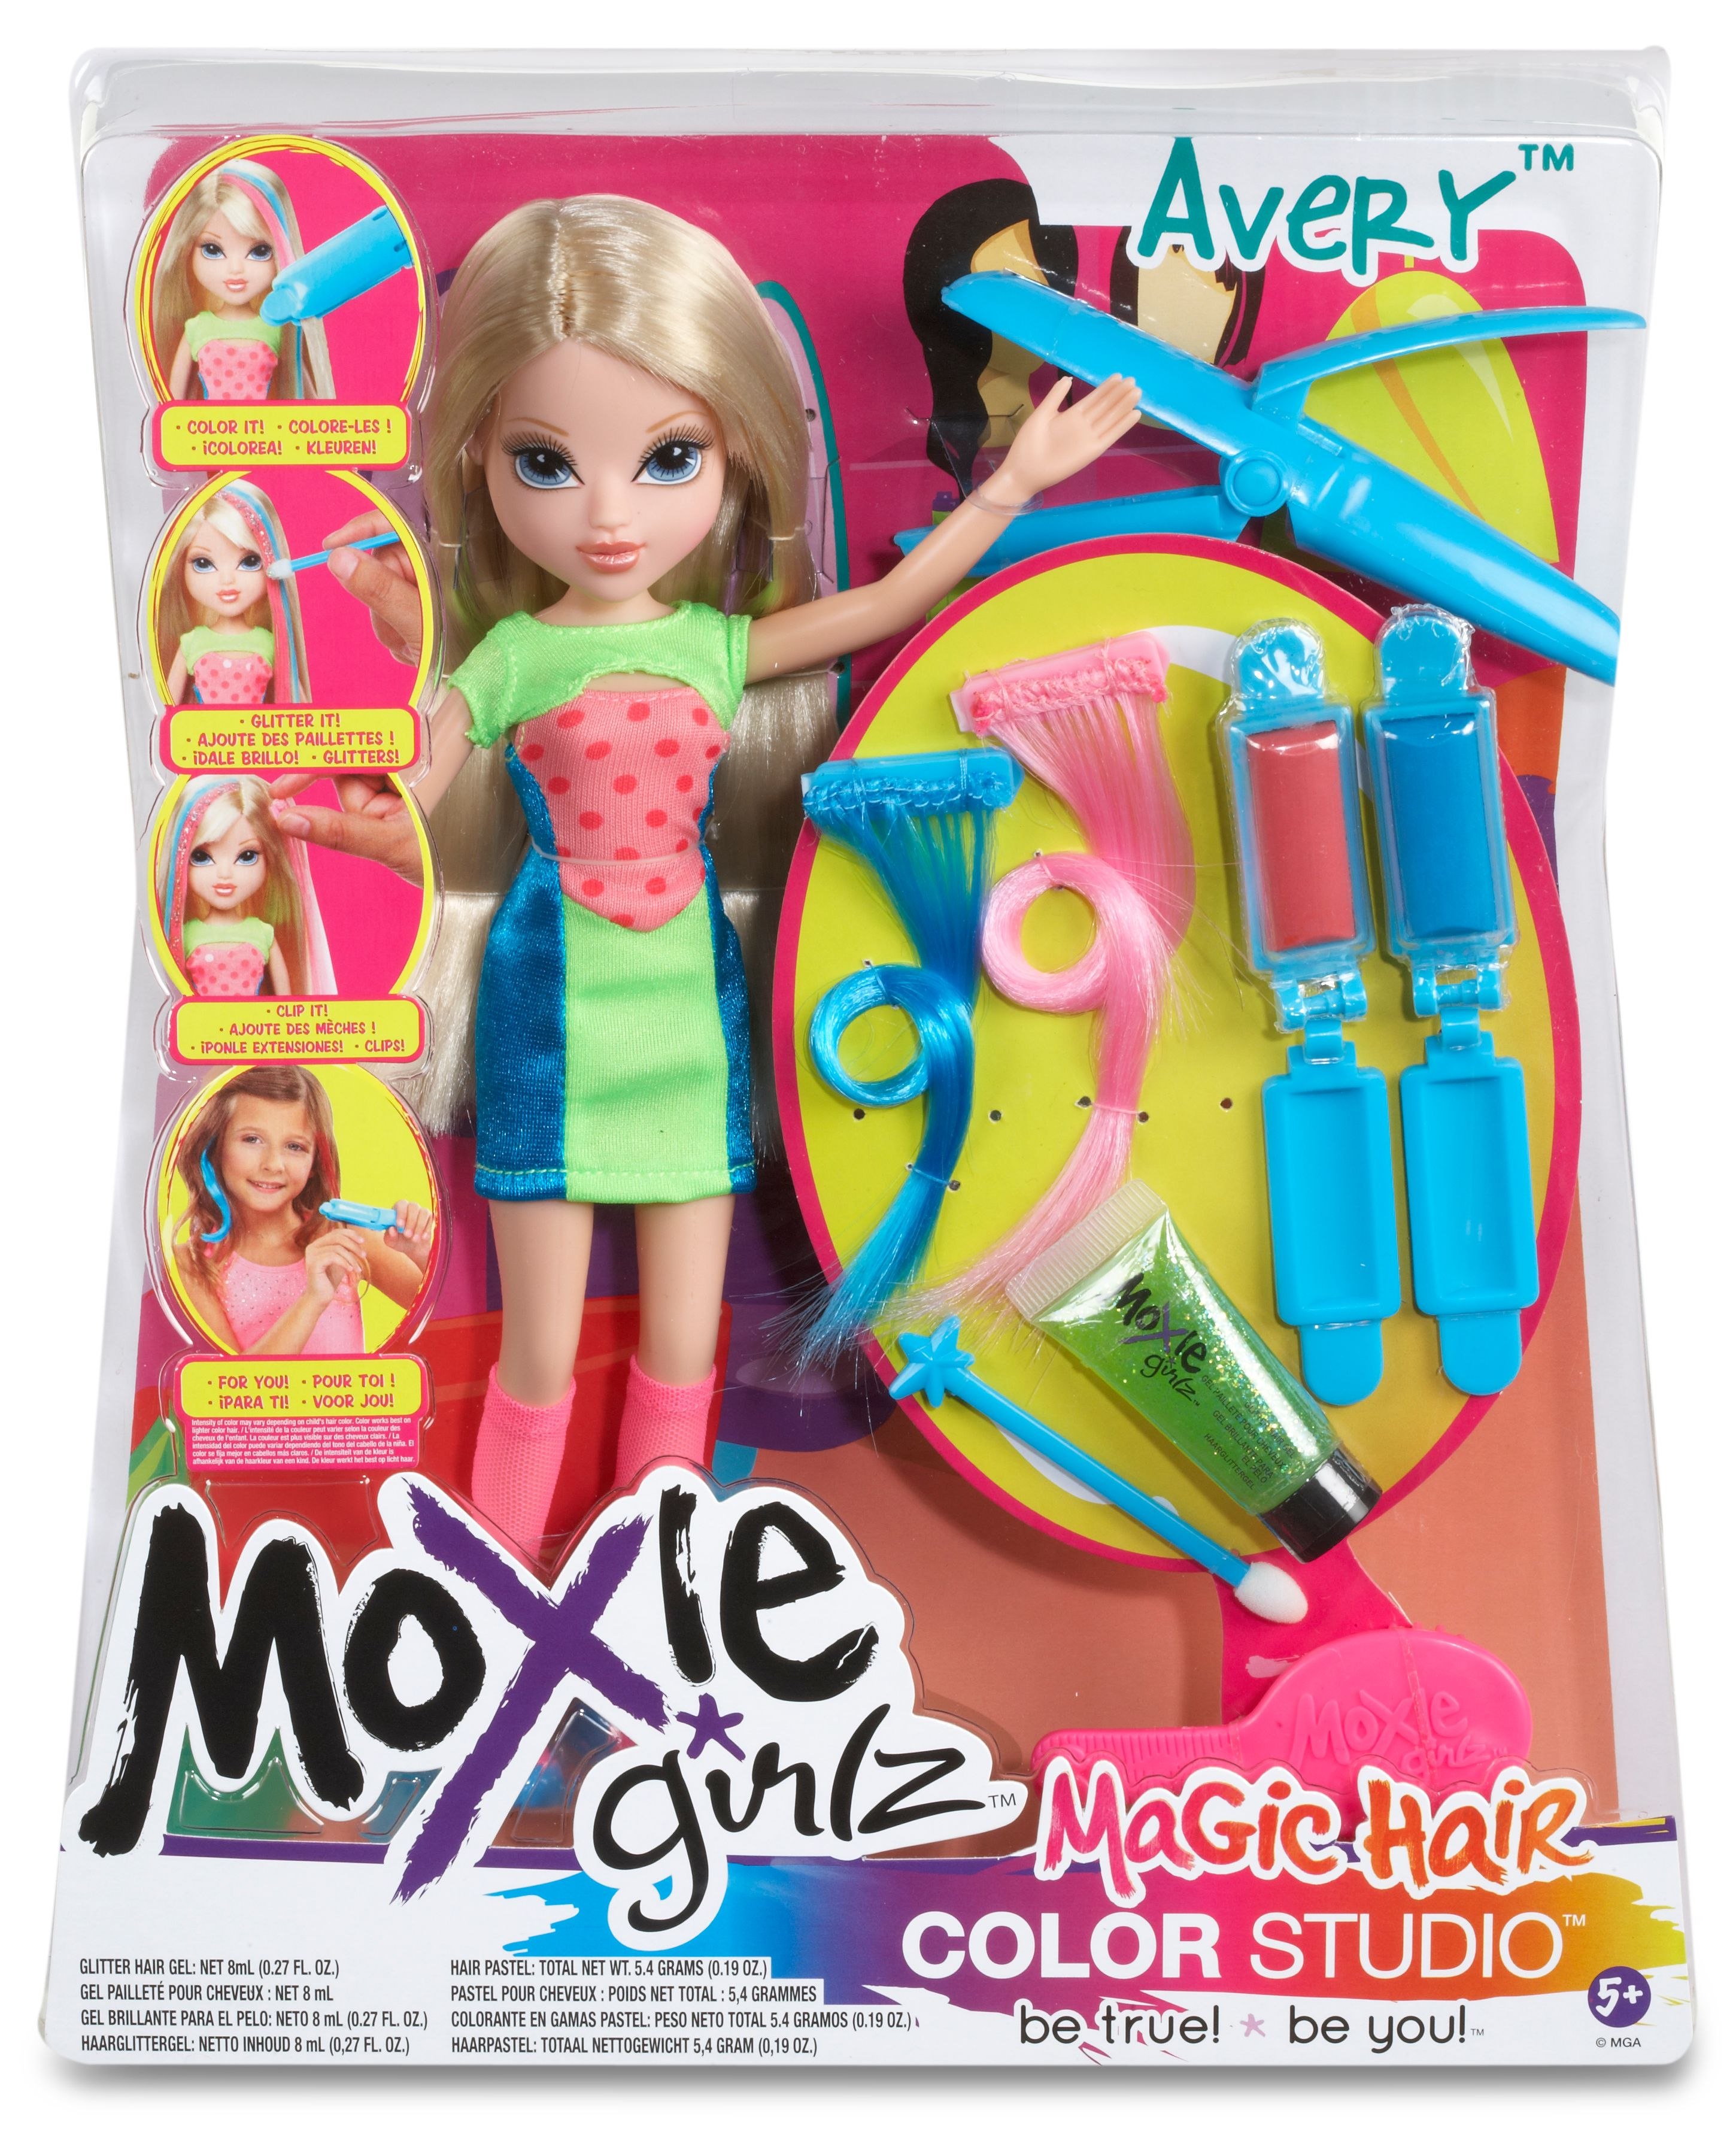 Moxie Girlz Avery Magic Hair Color Studio